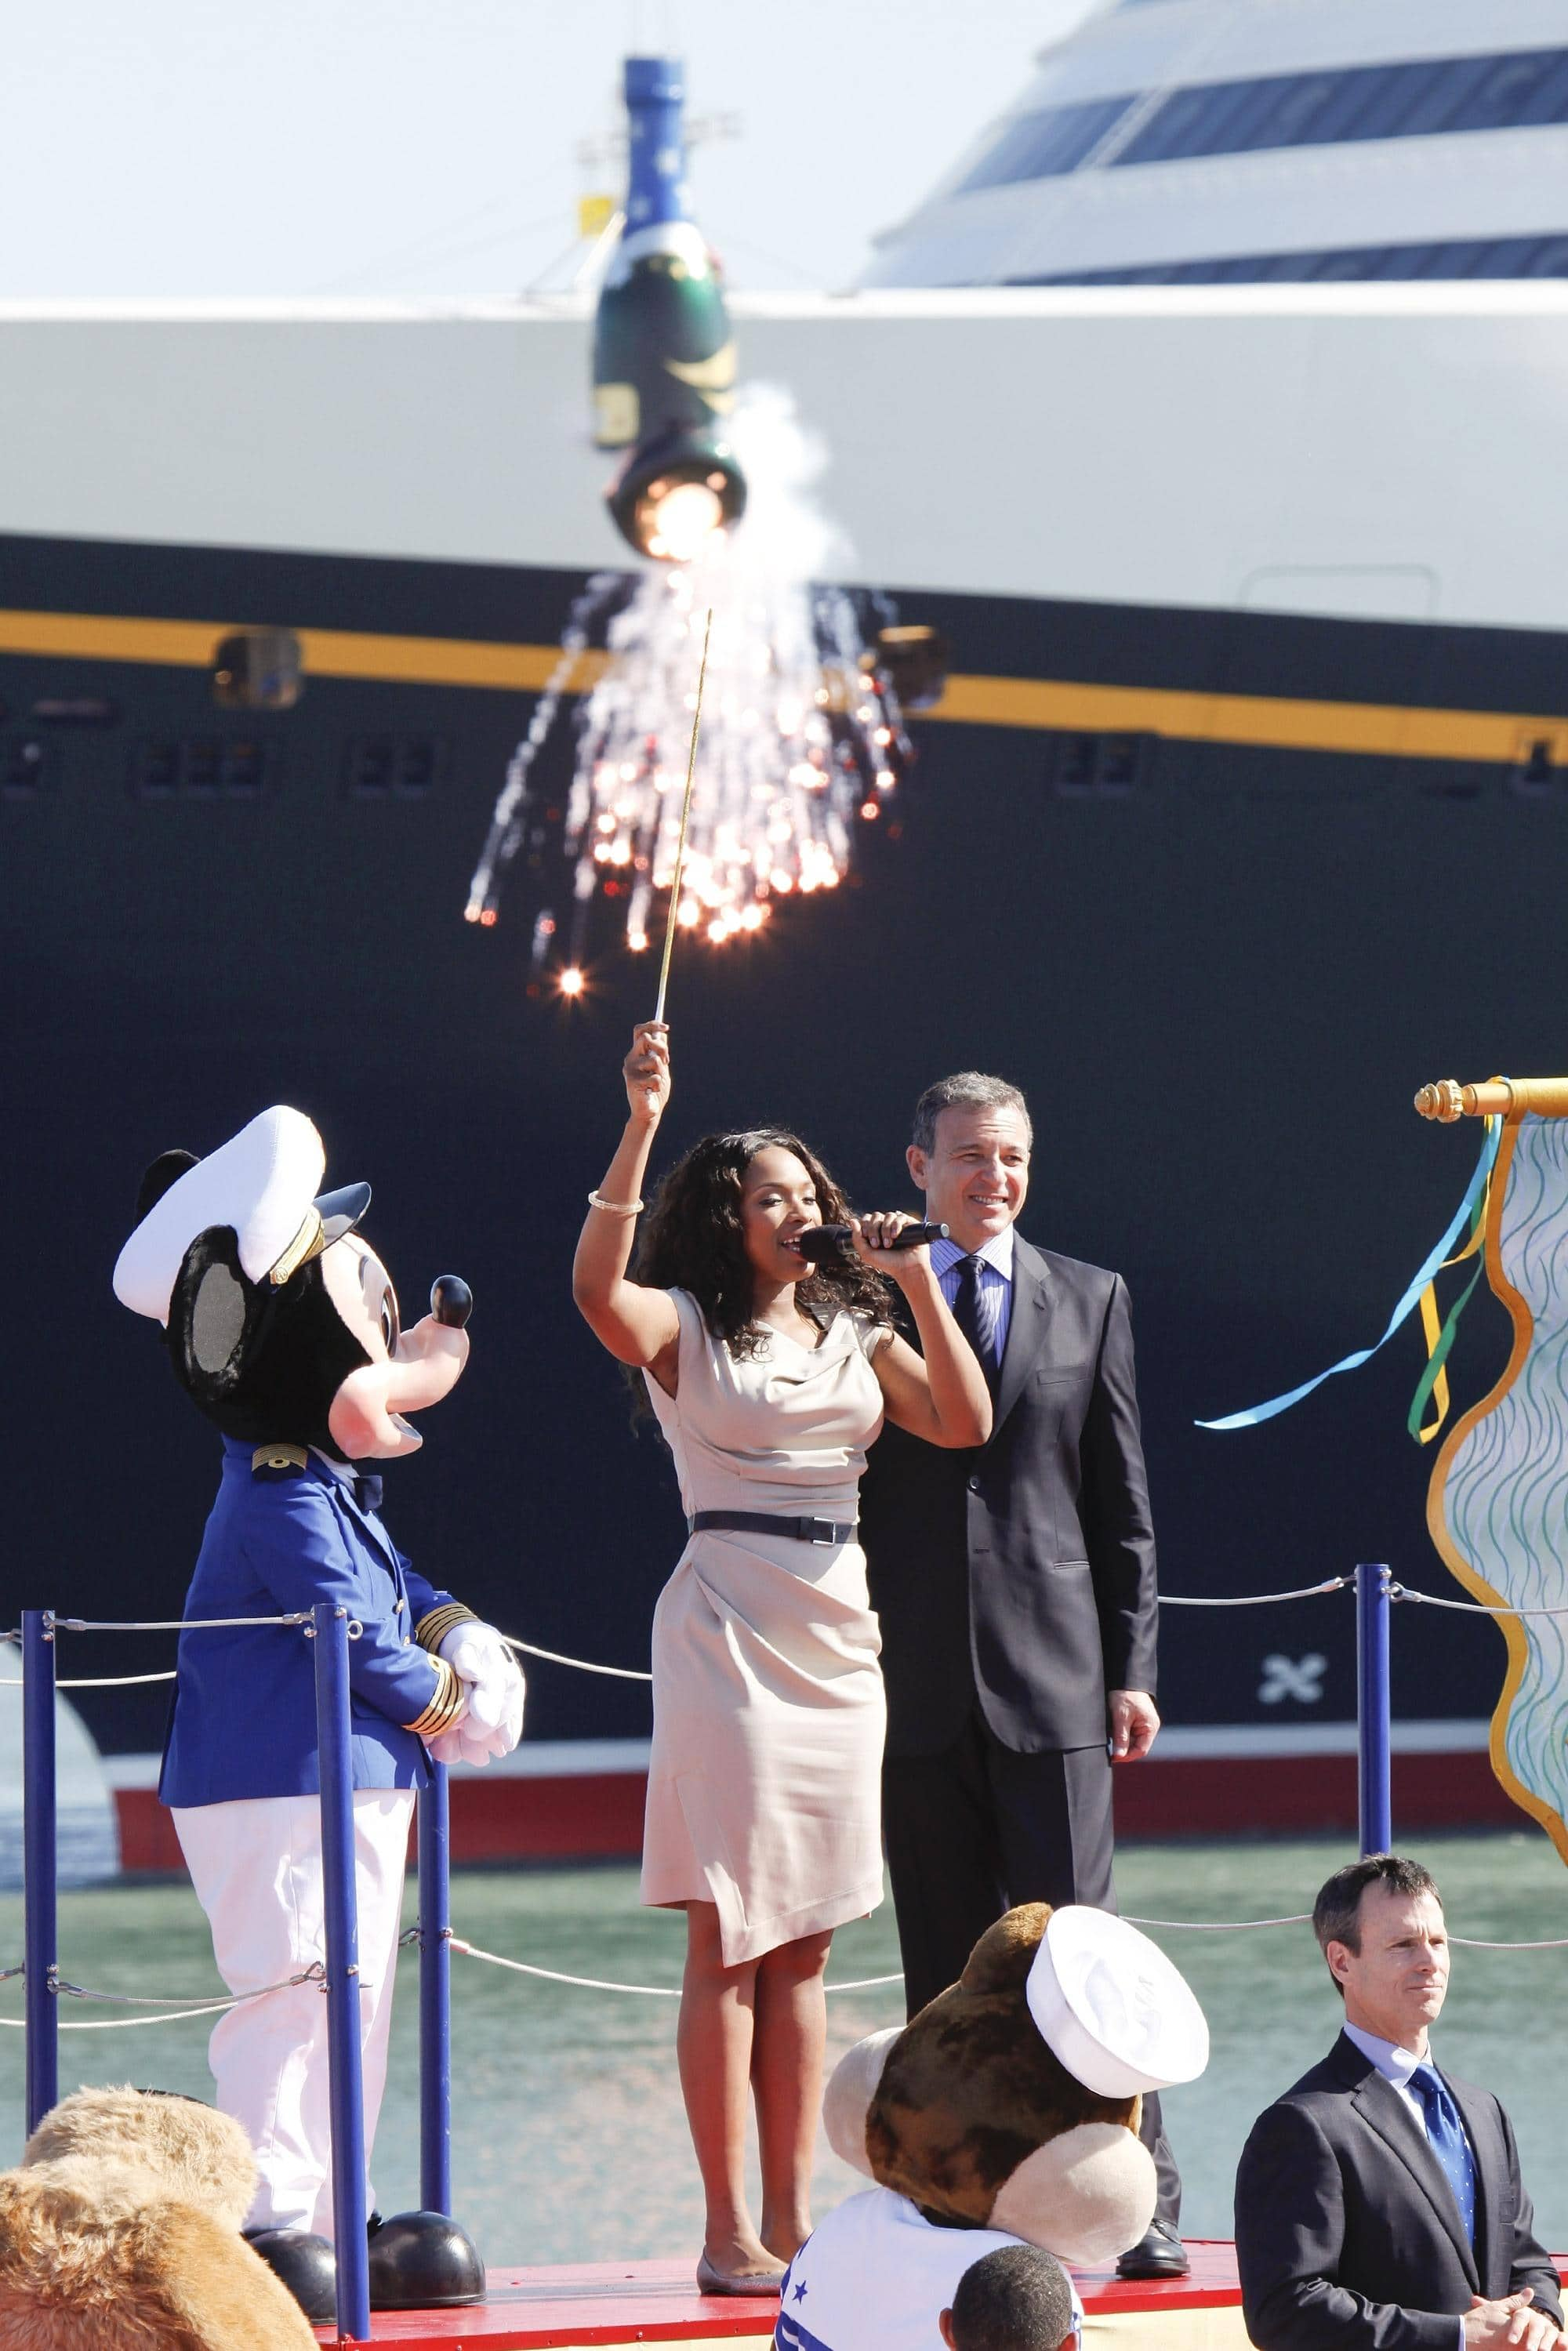 Mickey Mouse, Disney Dream Fairy Godmother Jennifer Hudson and Disney CEO Bob Iger at Disney Dream christening ceremony